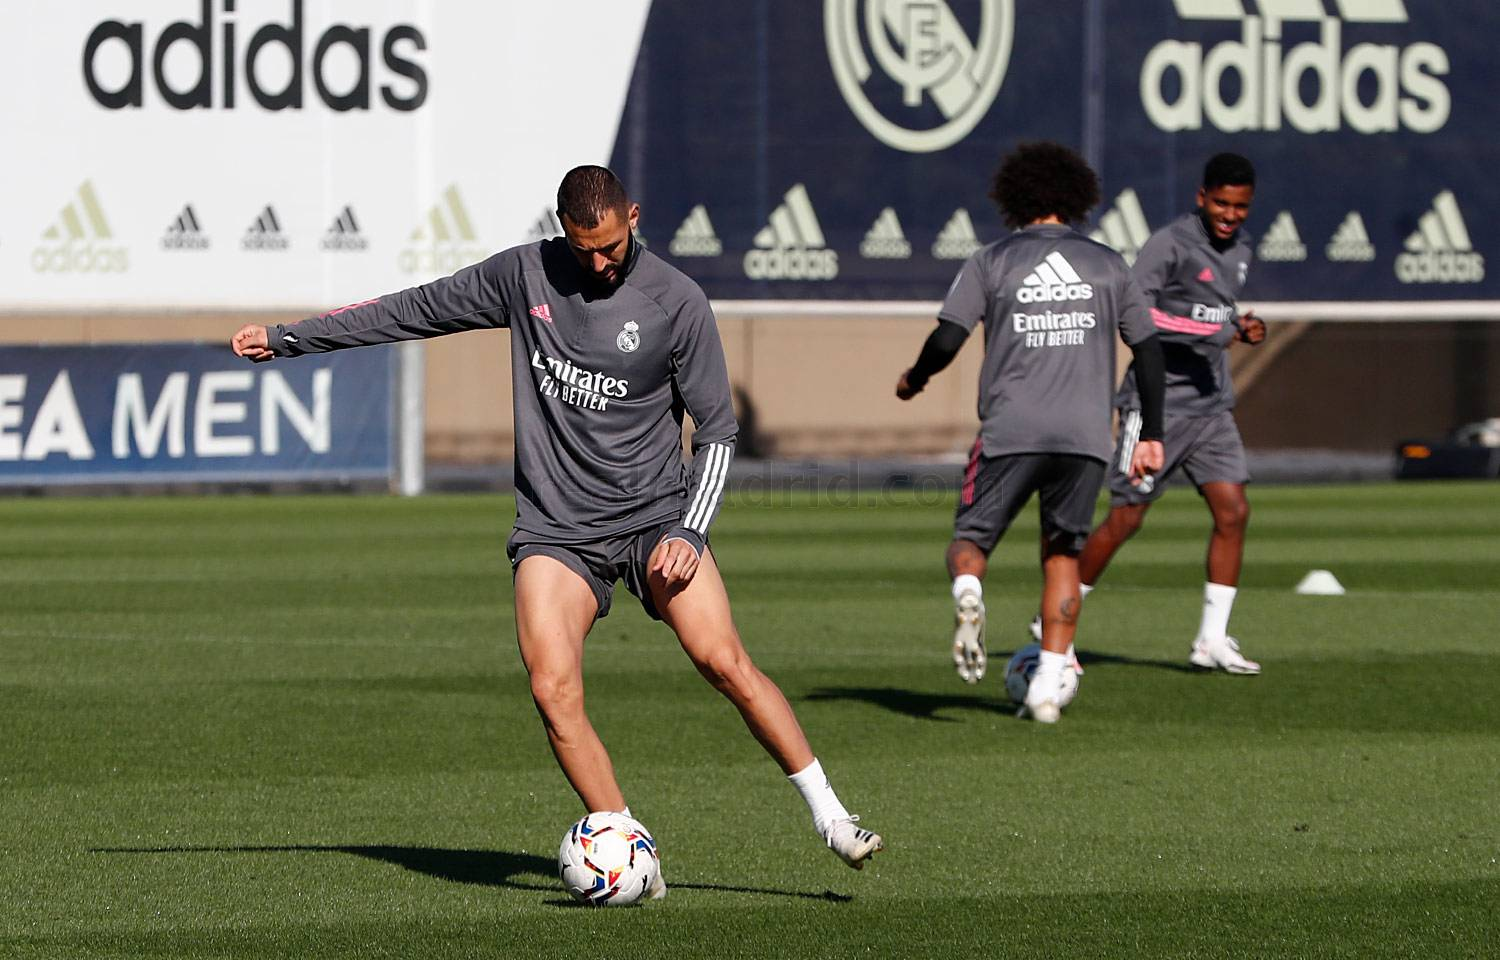 Real Madrid - Entrenamiento del Real Madrid  - 28-09-2020